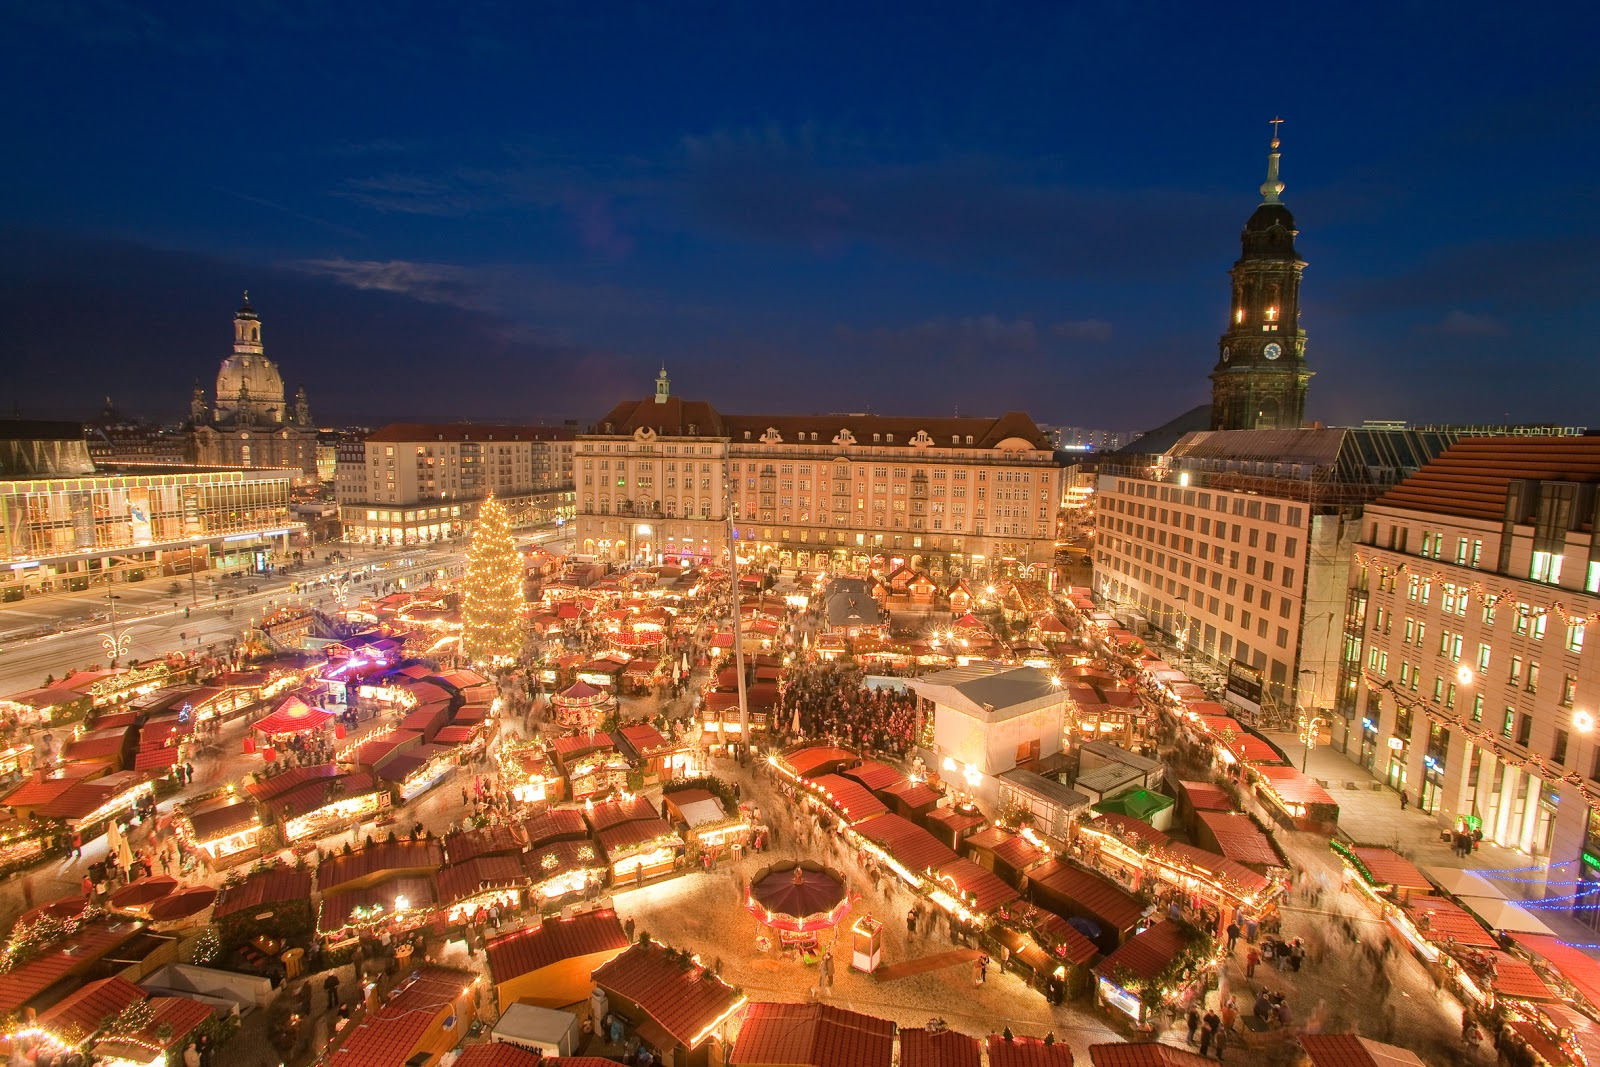 Nuremberg Christmas Market.3 Mesmerizing Christmas Markets In Germany